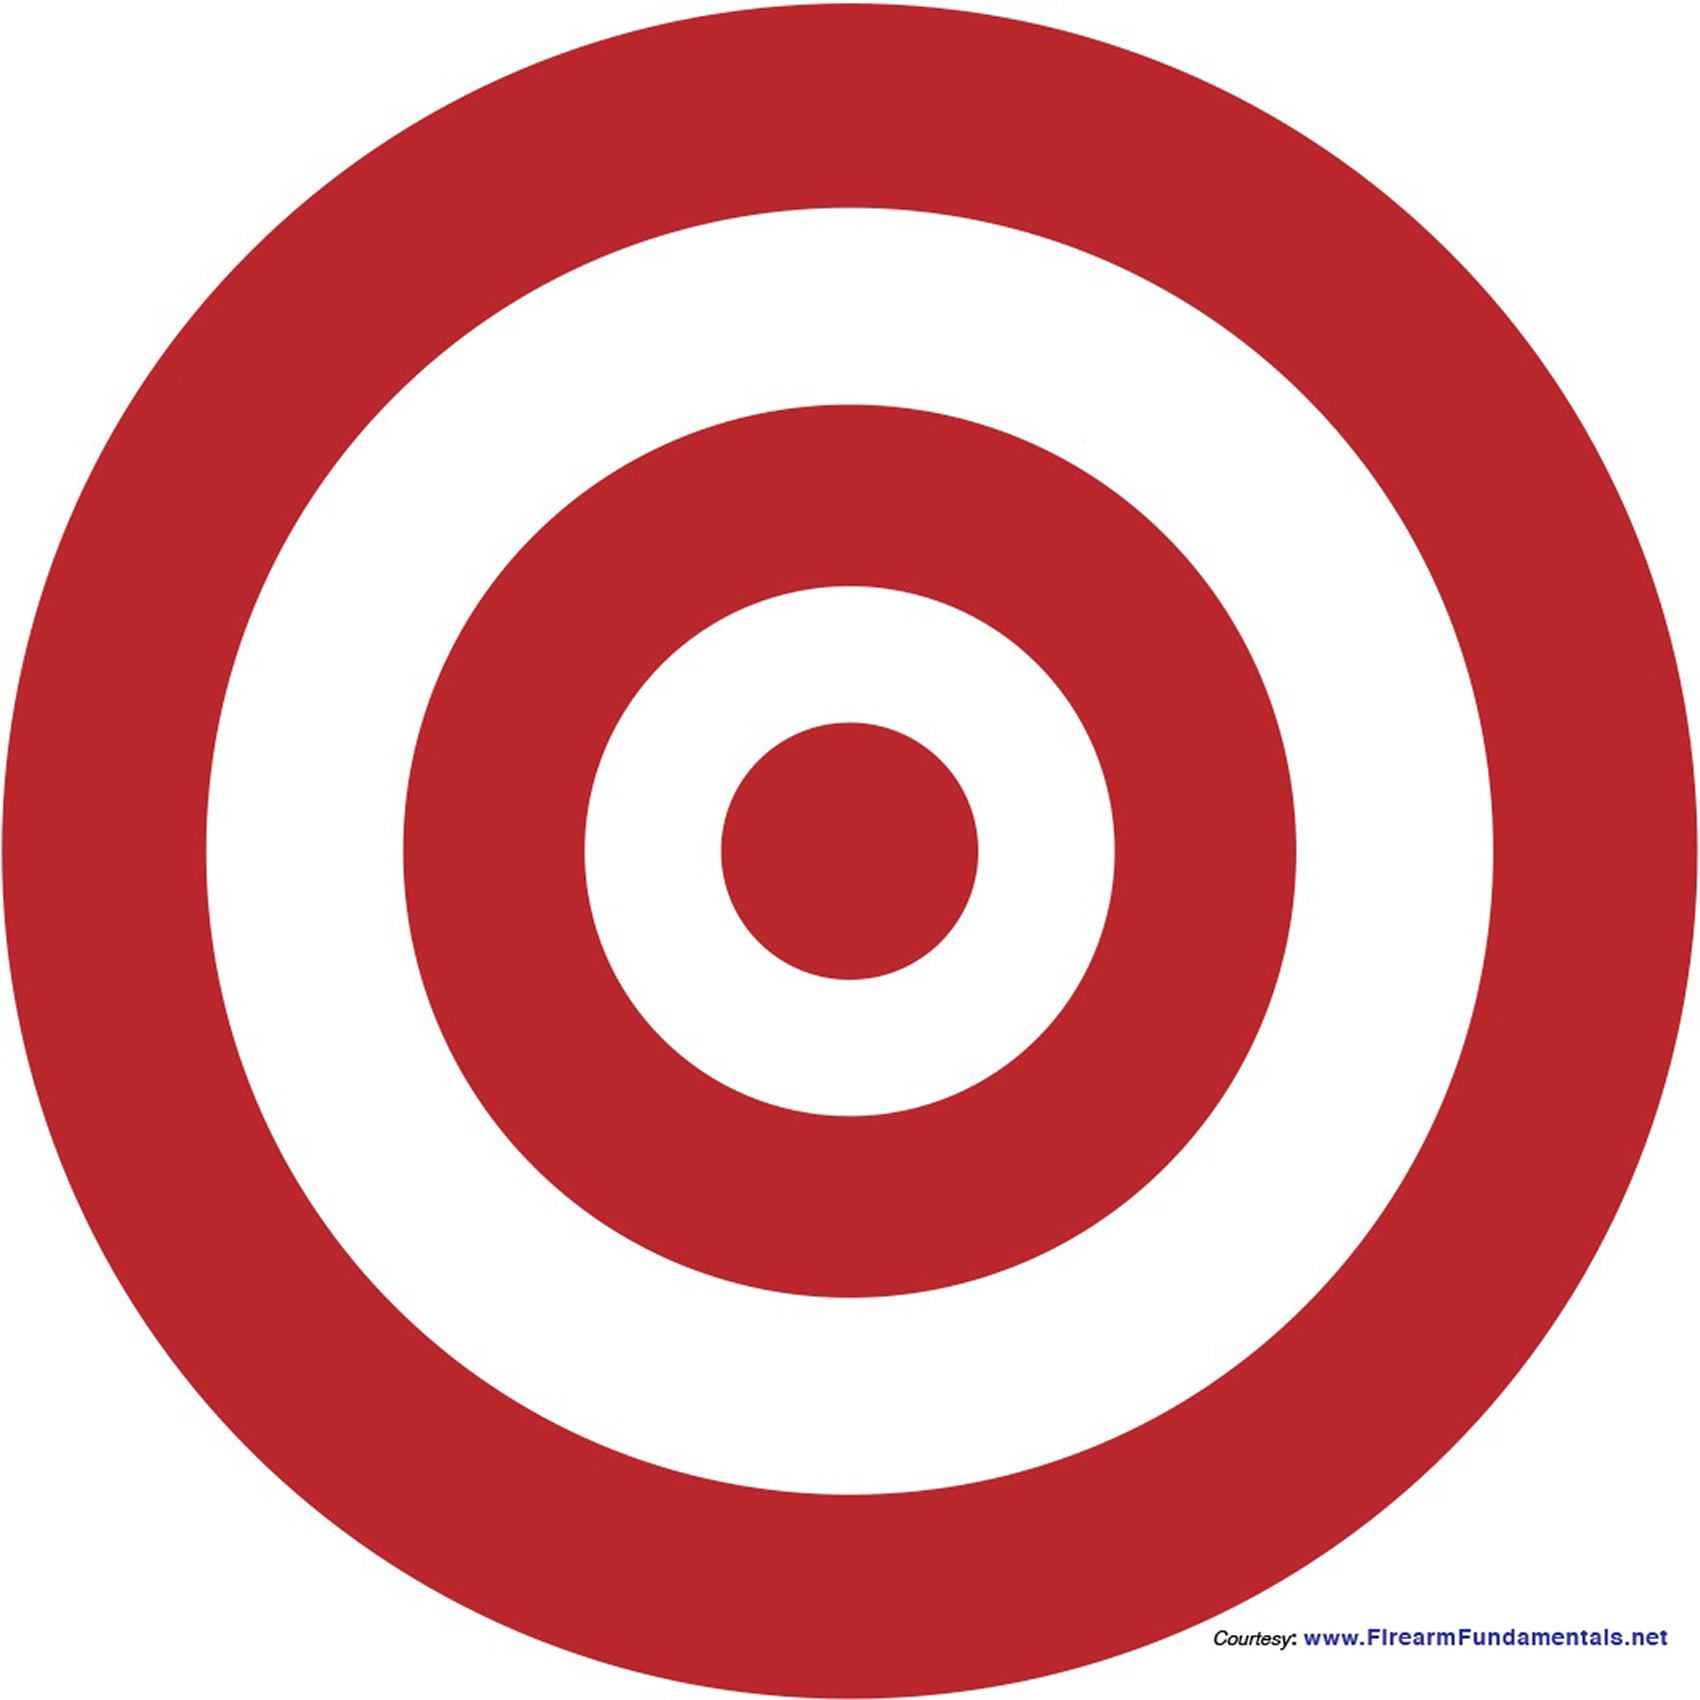 Clip Art Bullseye Clipart bullseye clipart kid 25 images free cliparts that you can download to computer